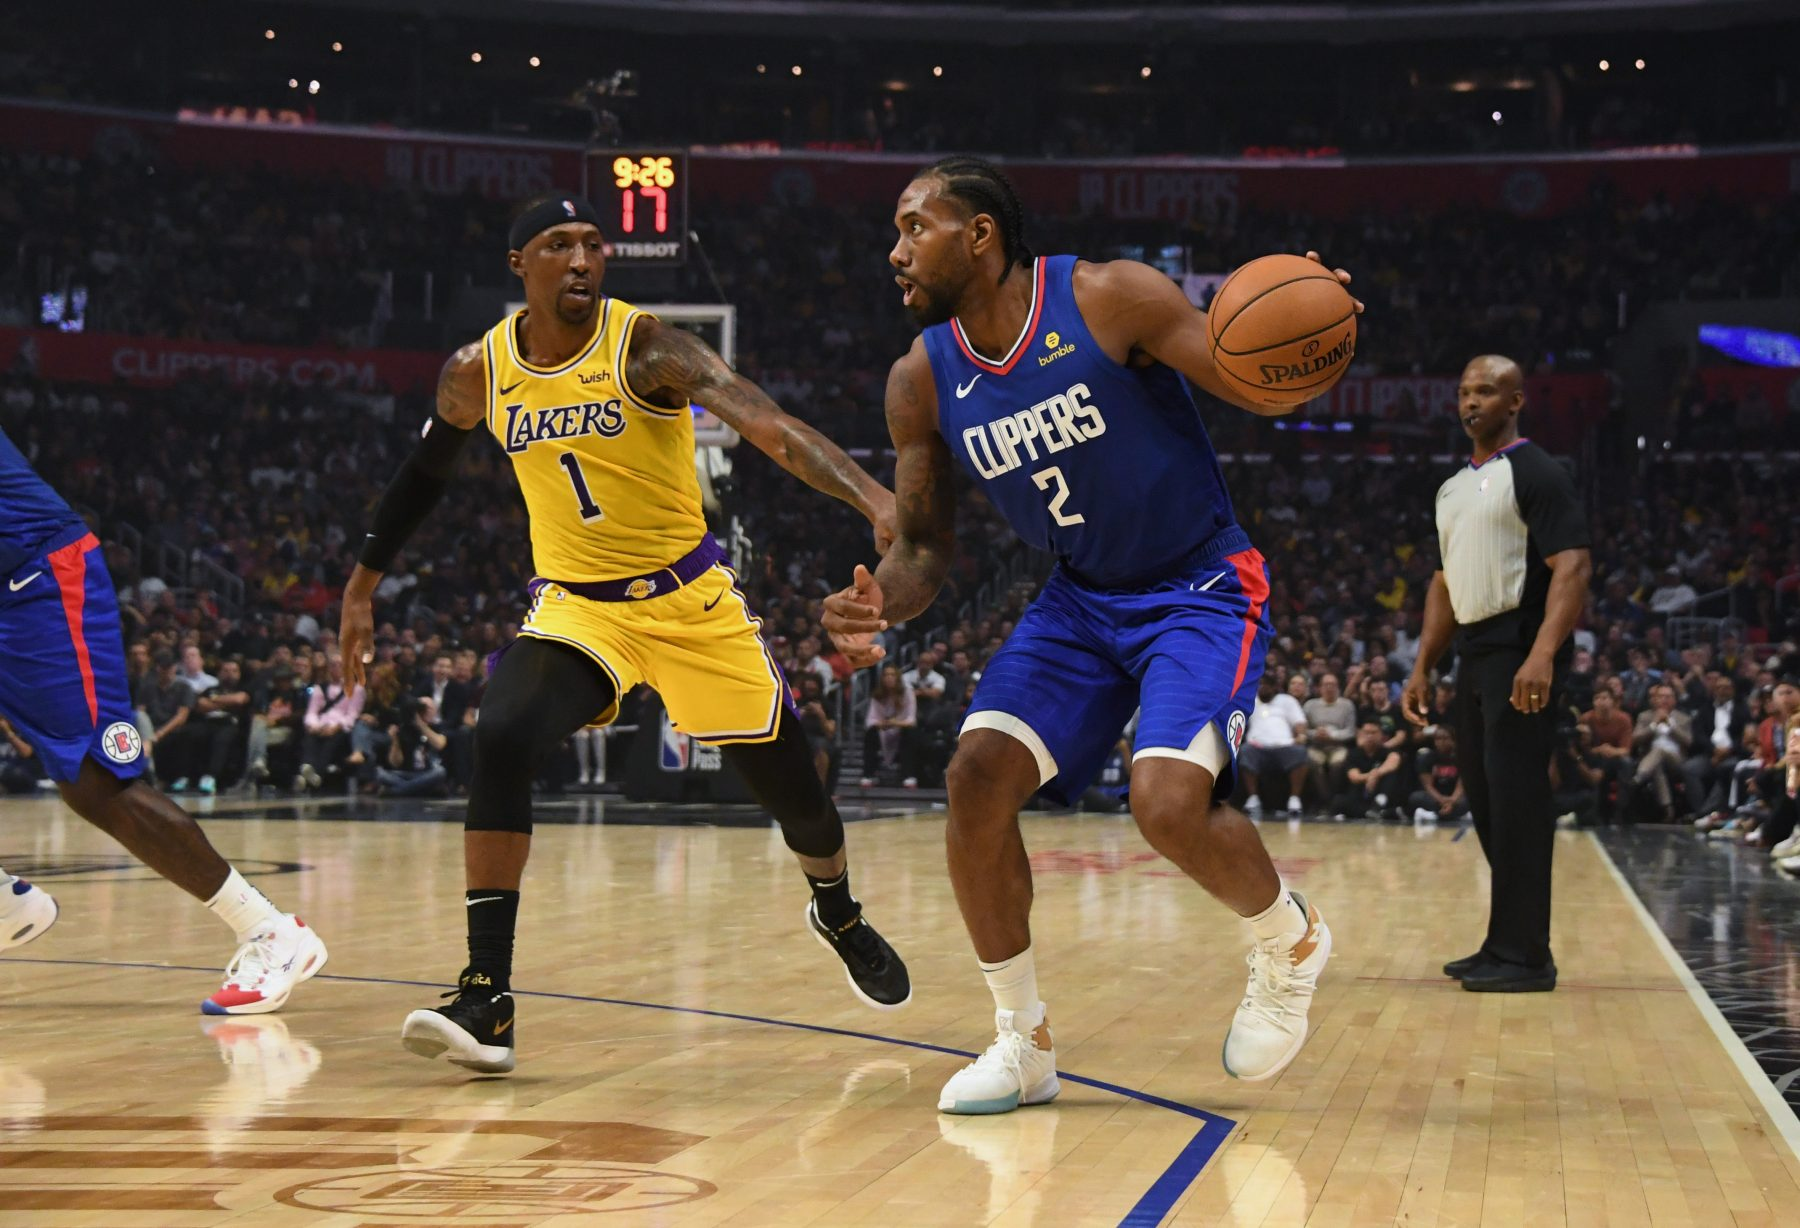 Kentavious Caldwell-Pope and Kawhi Leonard